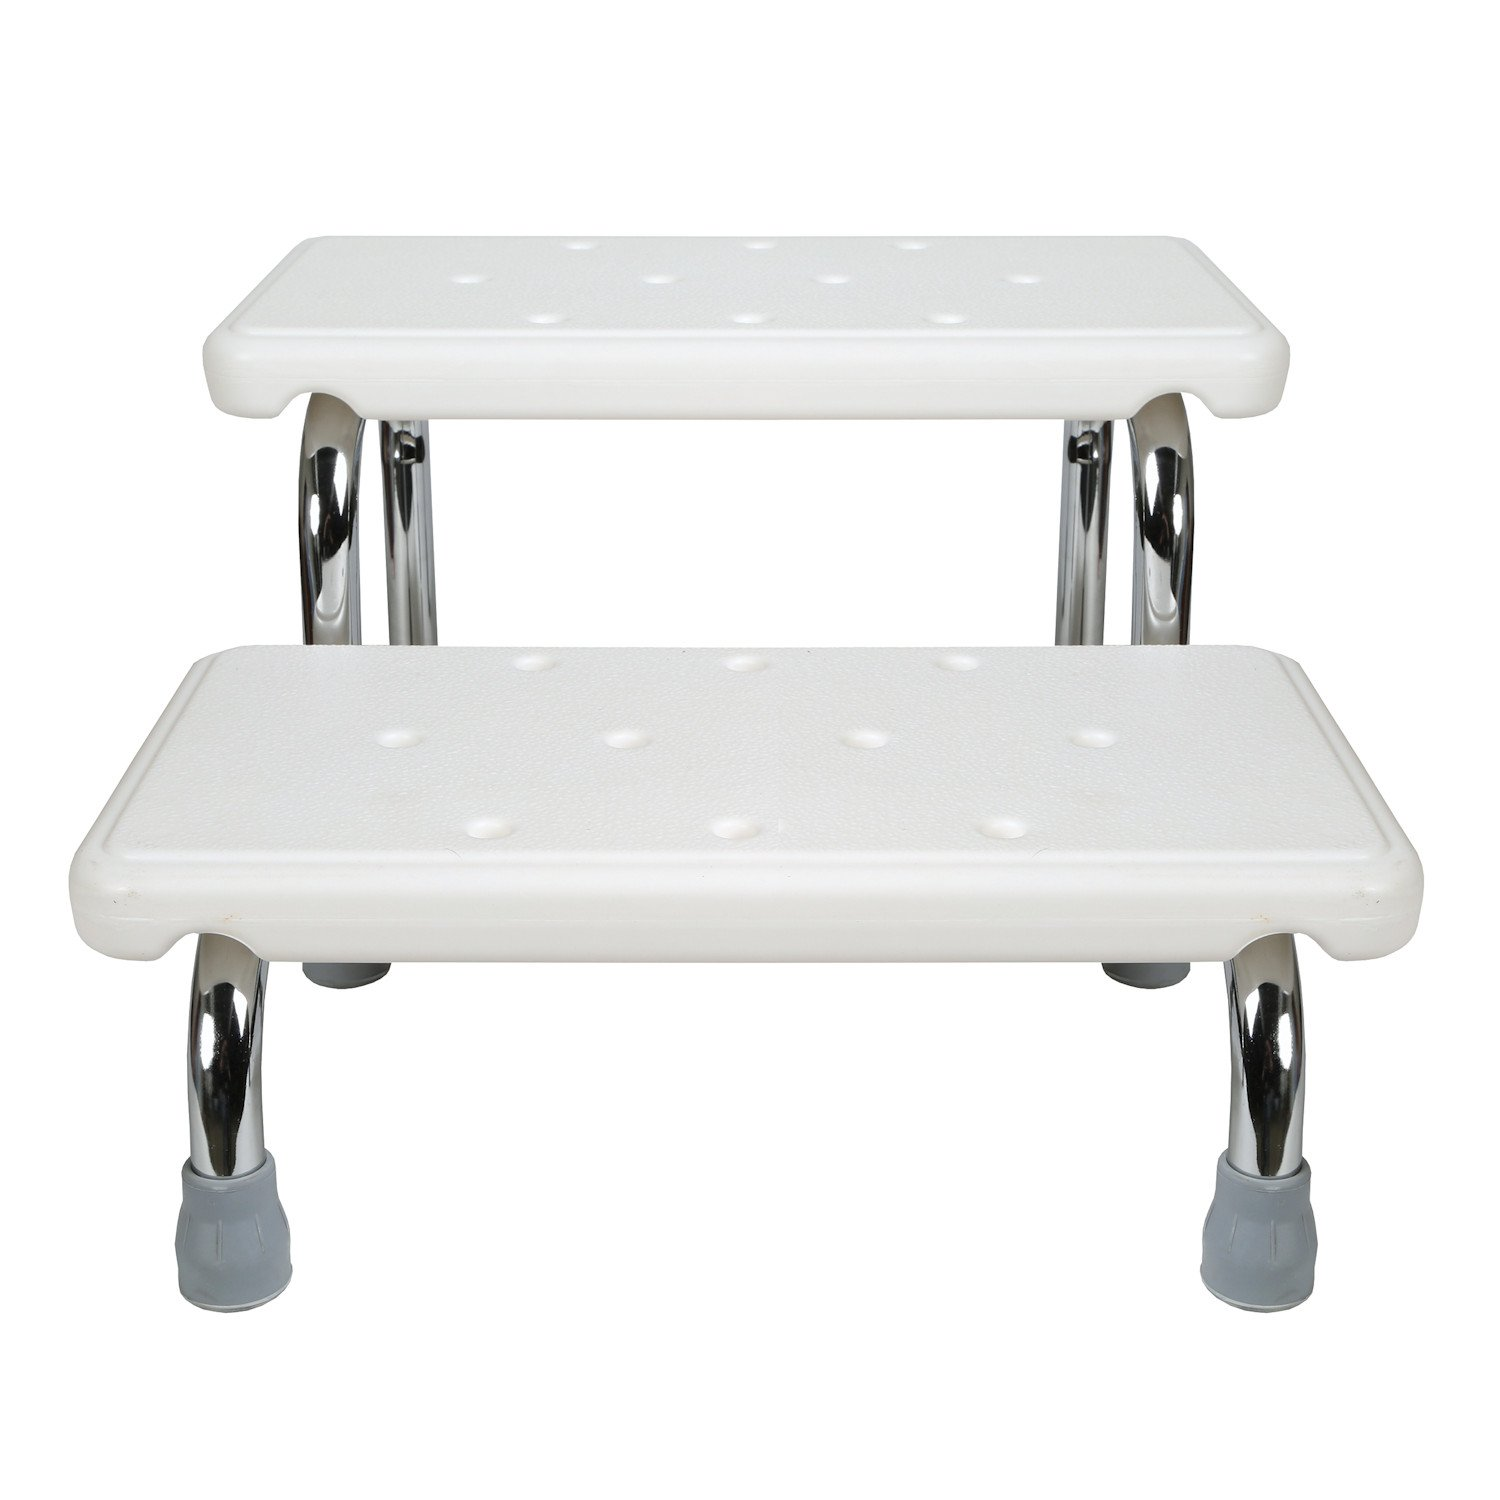 Safety Bath Steps - 2 Stairs - Steel Frame Non-Slip Rubber Feet by SUPPORT PLUS